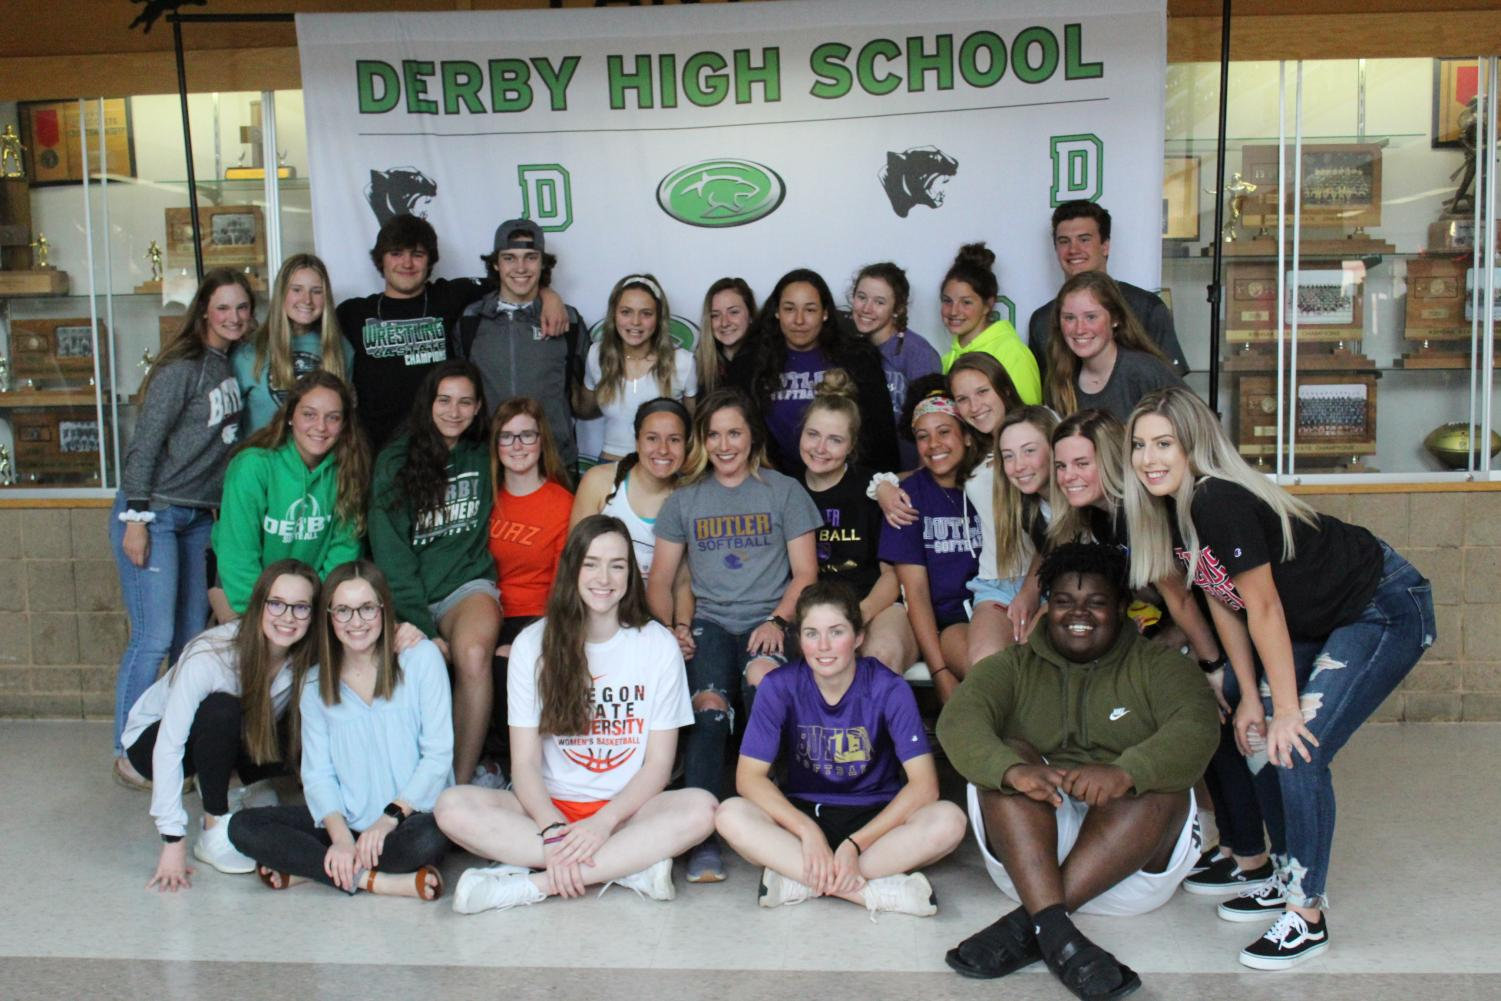 Senior Signing Day (4/17/19) Photos by Morgan Humphrey